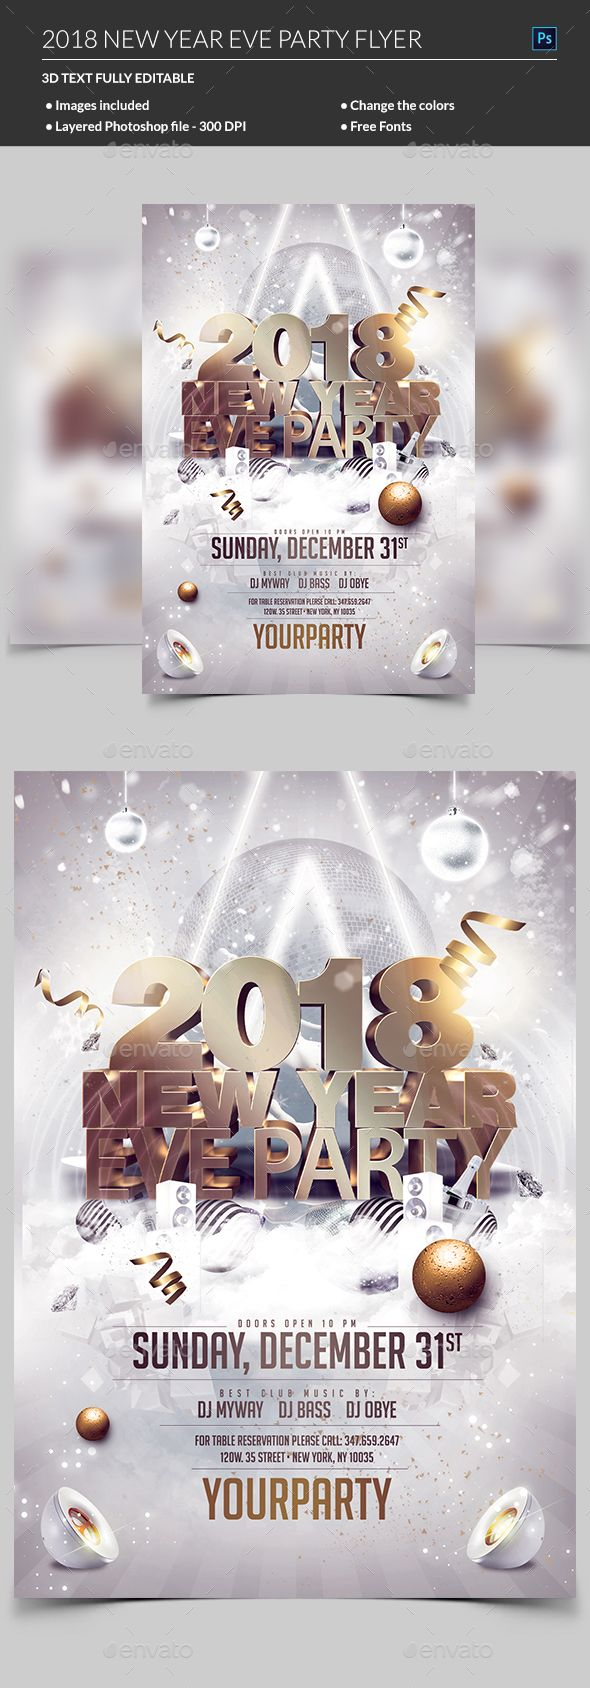 New Year Eve Flyer Template PSD #design #nye2018